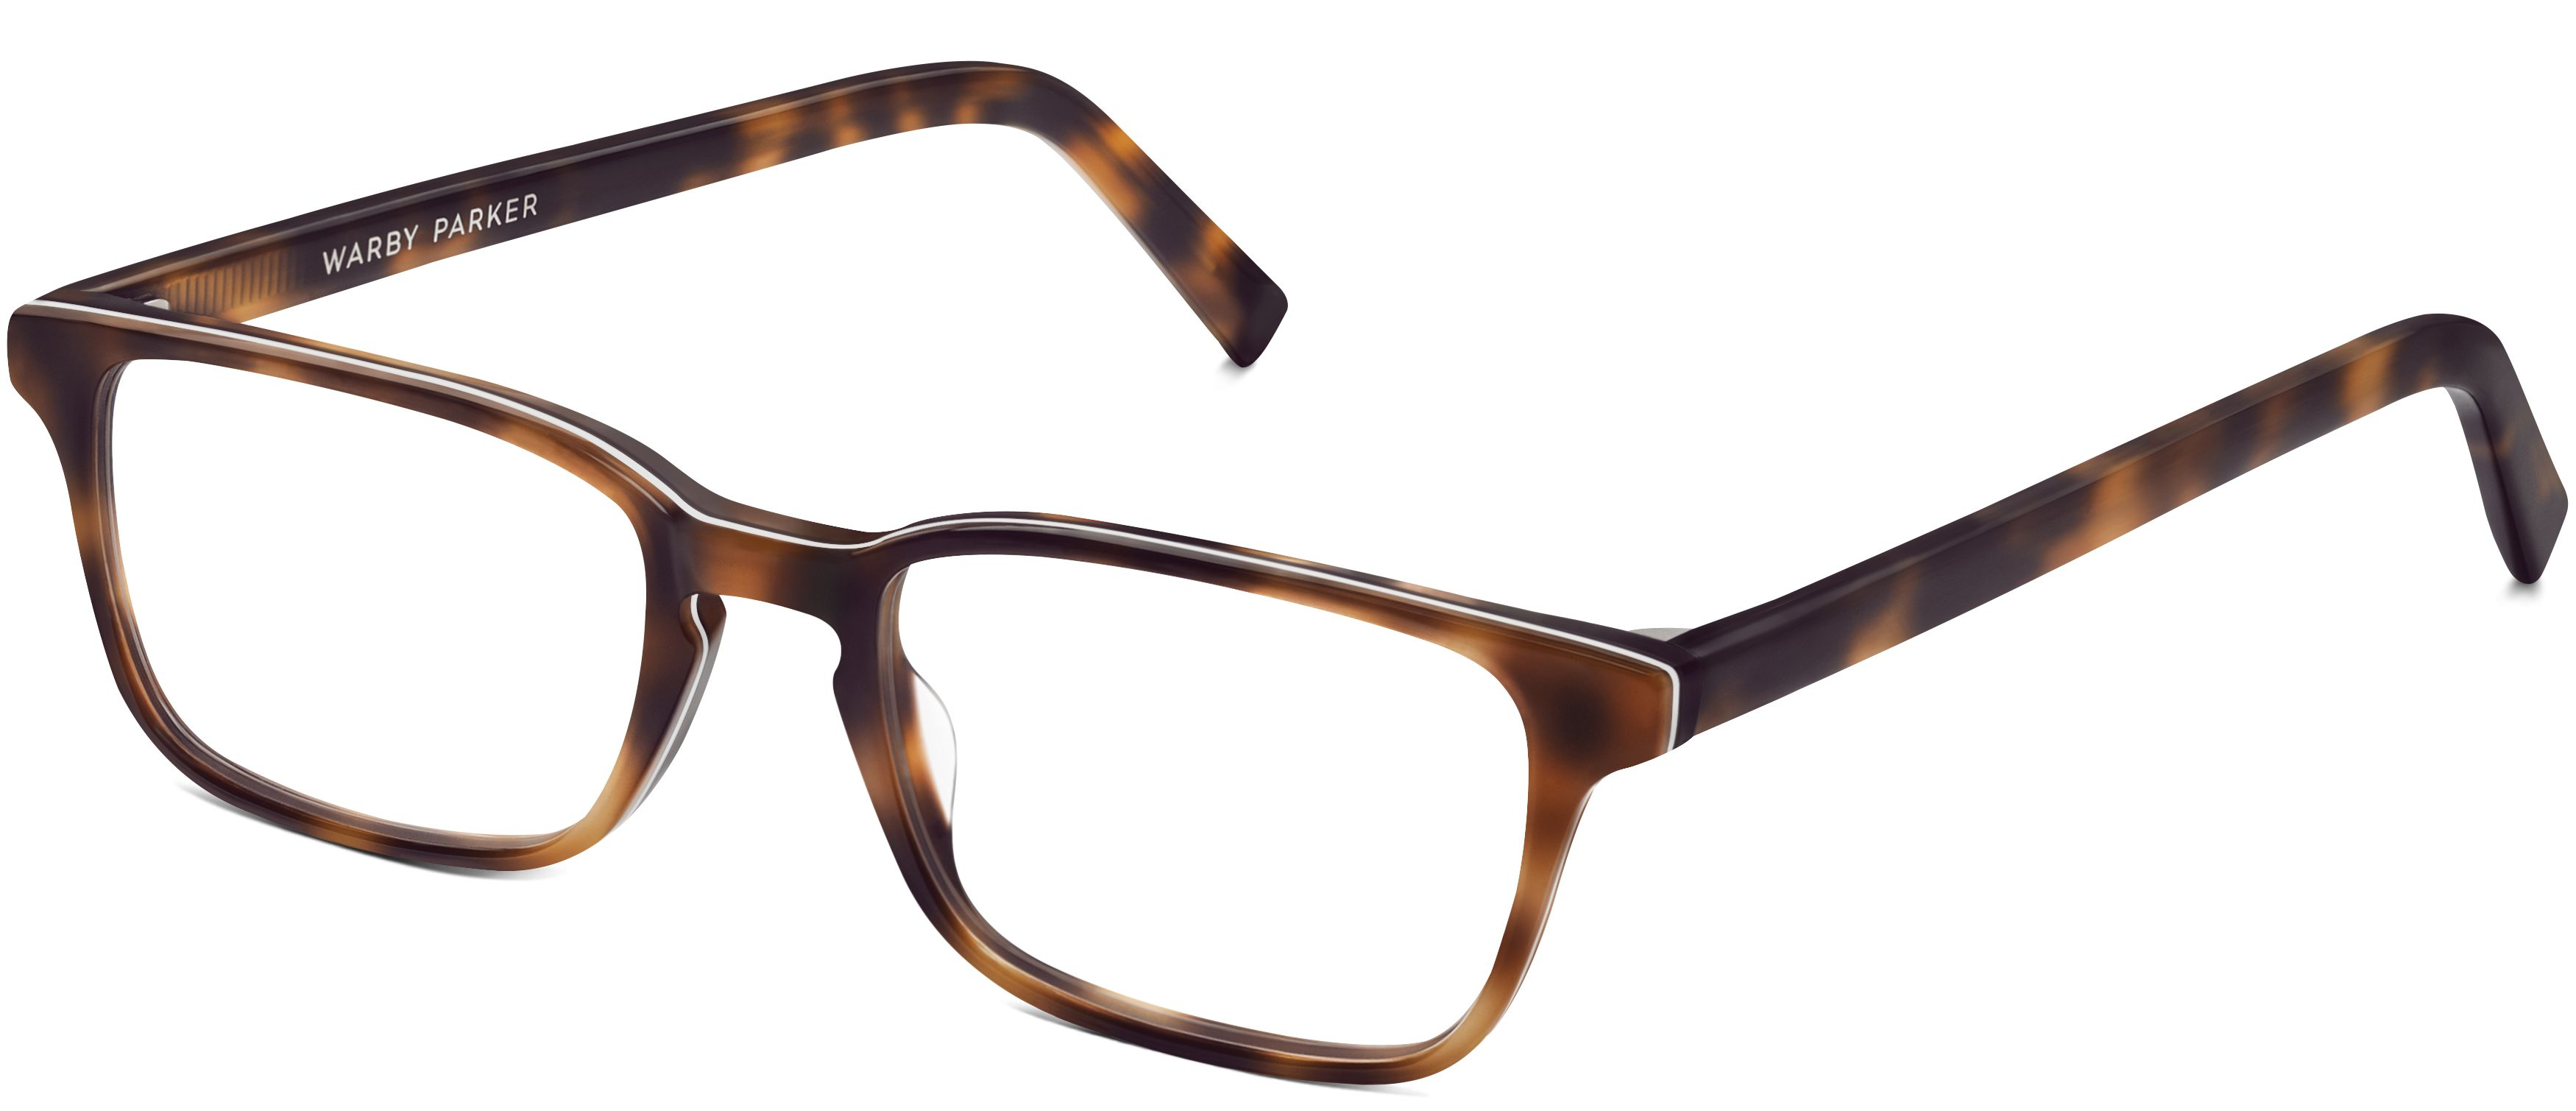 Hardy Eyeglasses in Layered Tortoise for Women | Warby Parker